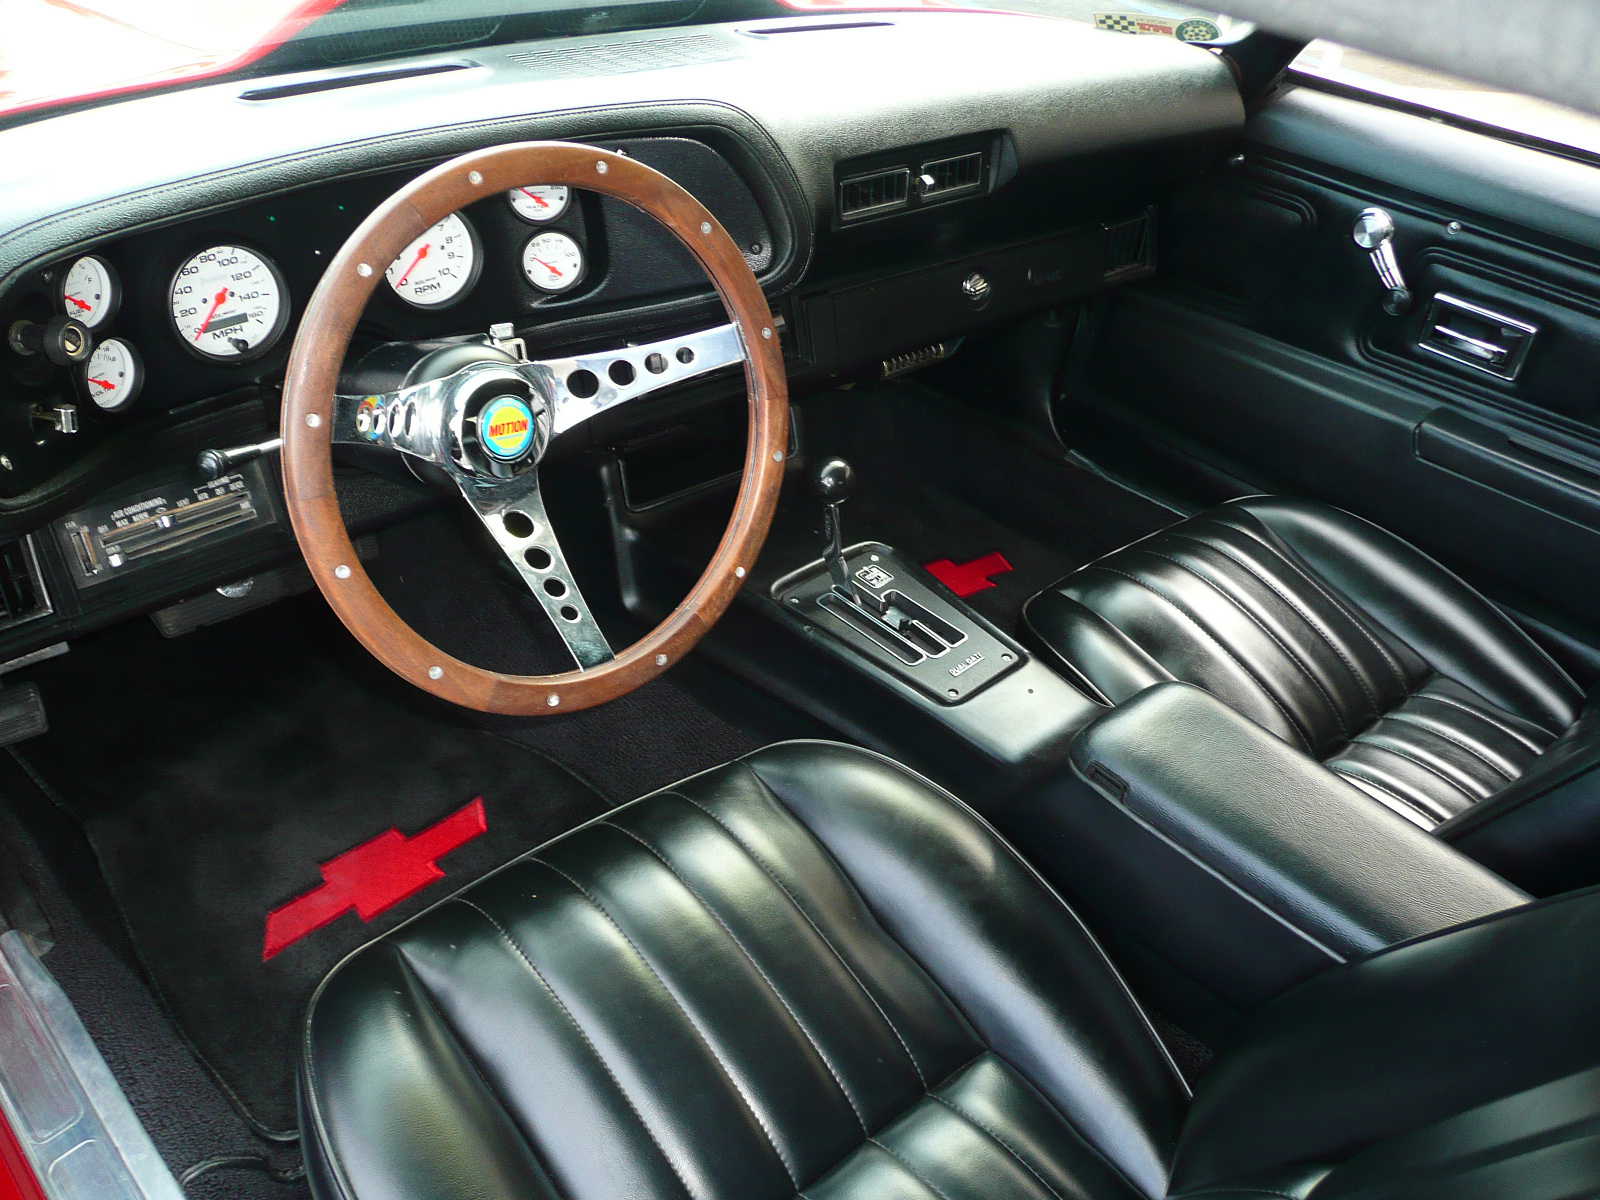 1970 CHEVROLET CAMARO CUSTOM CAMARO COUPE - Interior - 80977